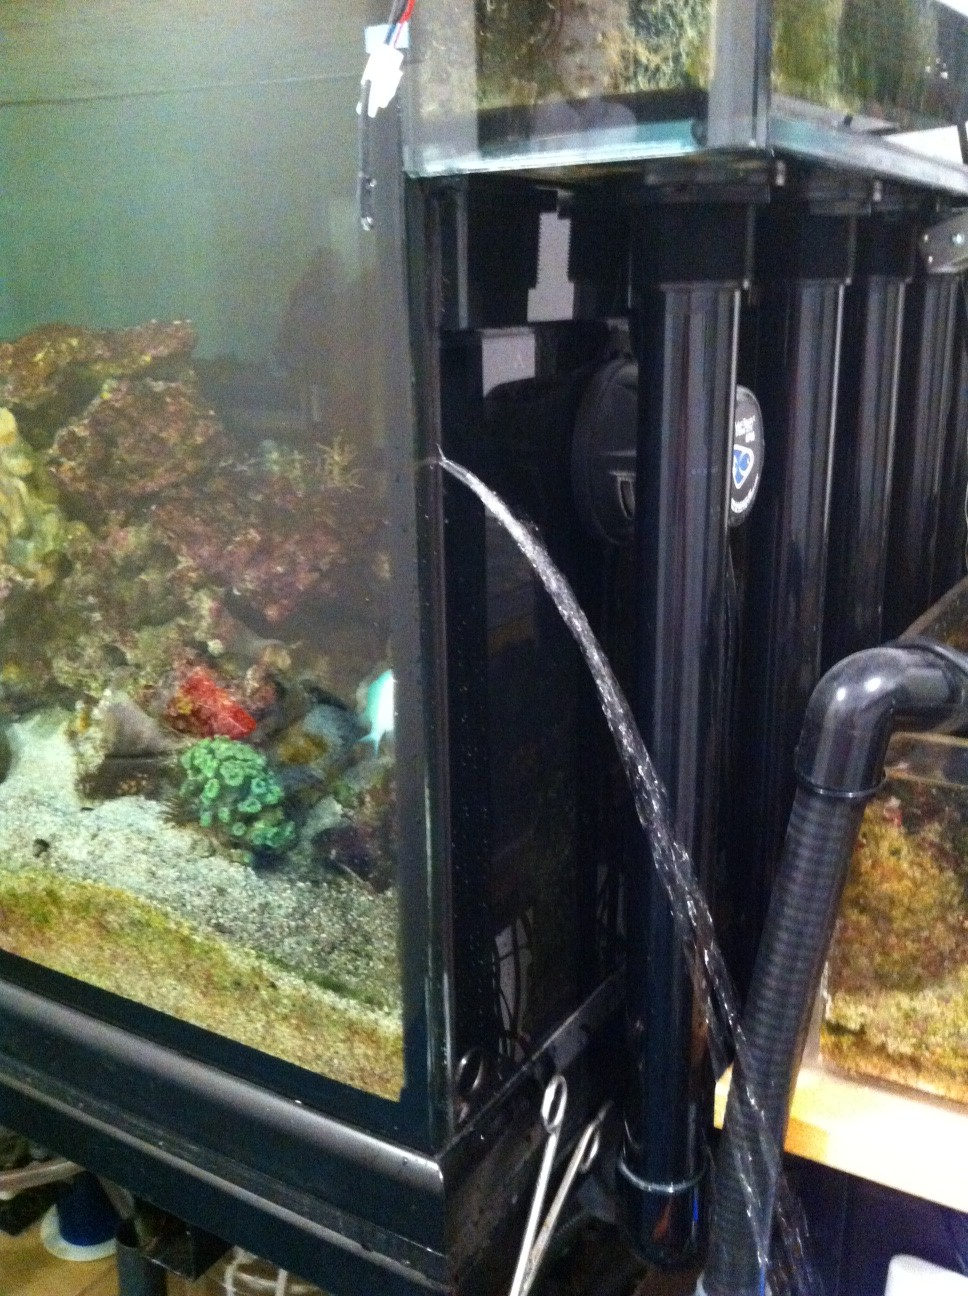 Your tank is leaking - what do you do right now?